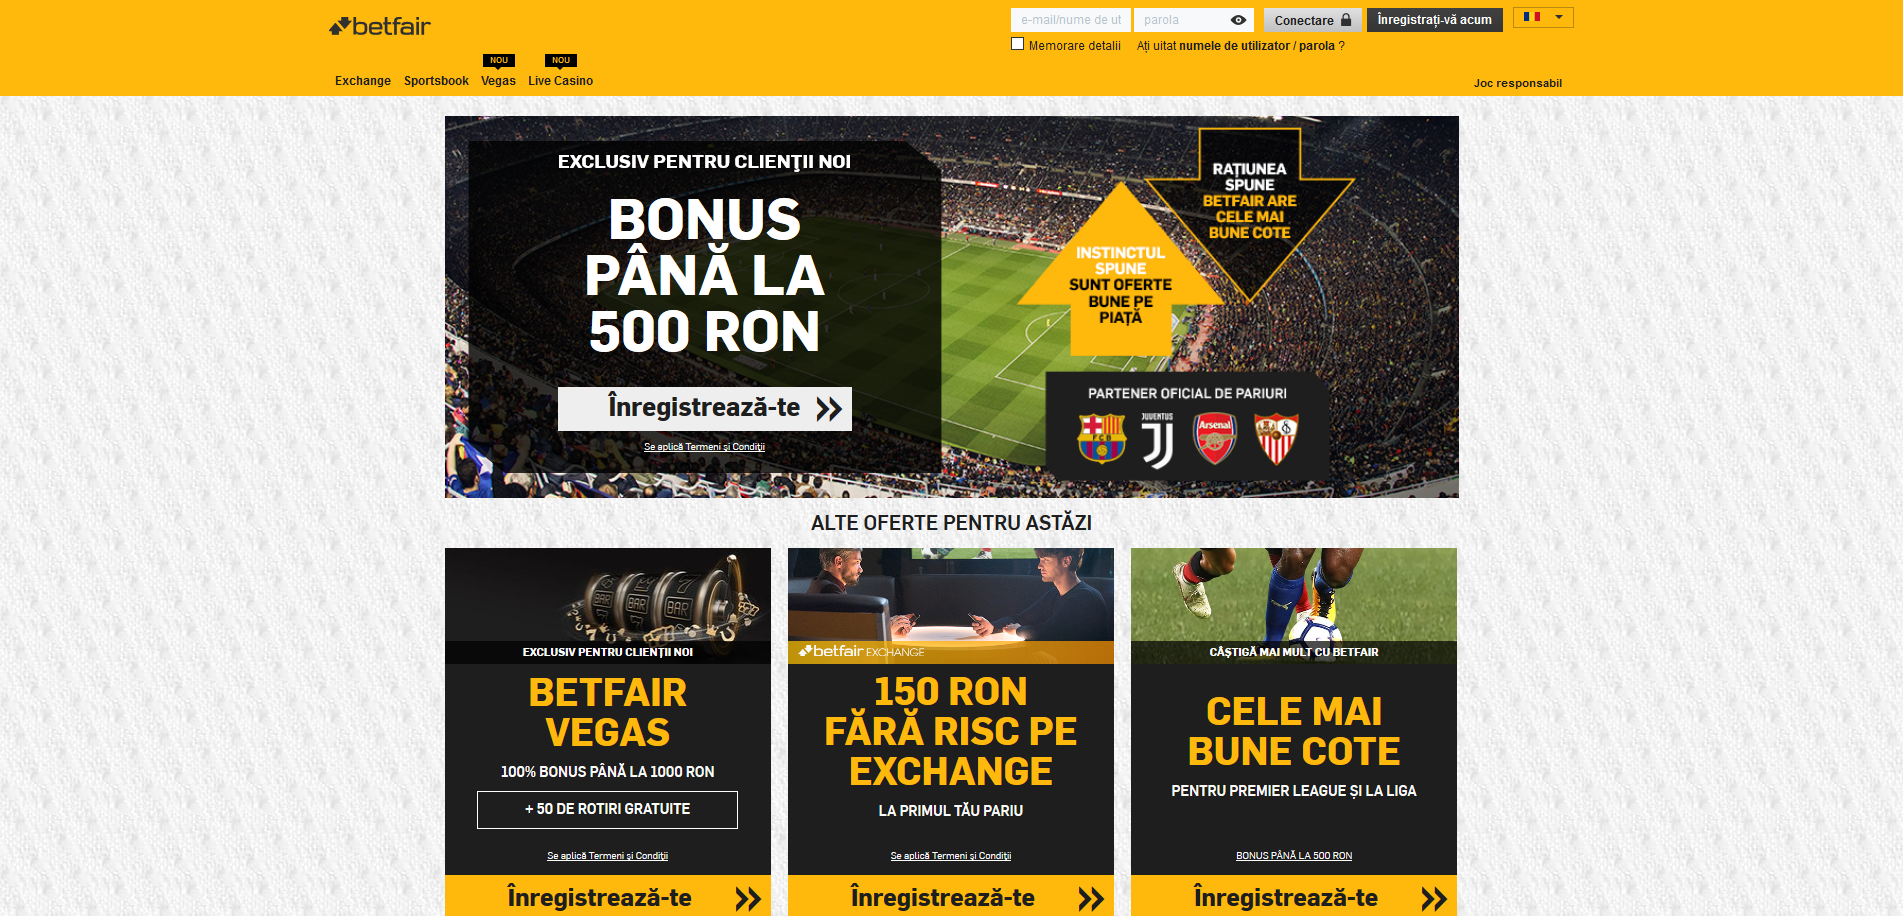 Betfair website